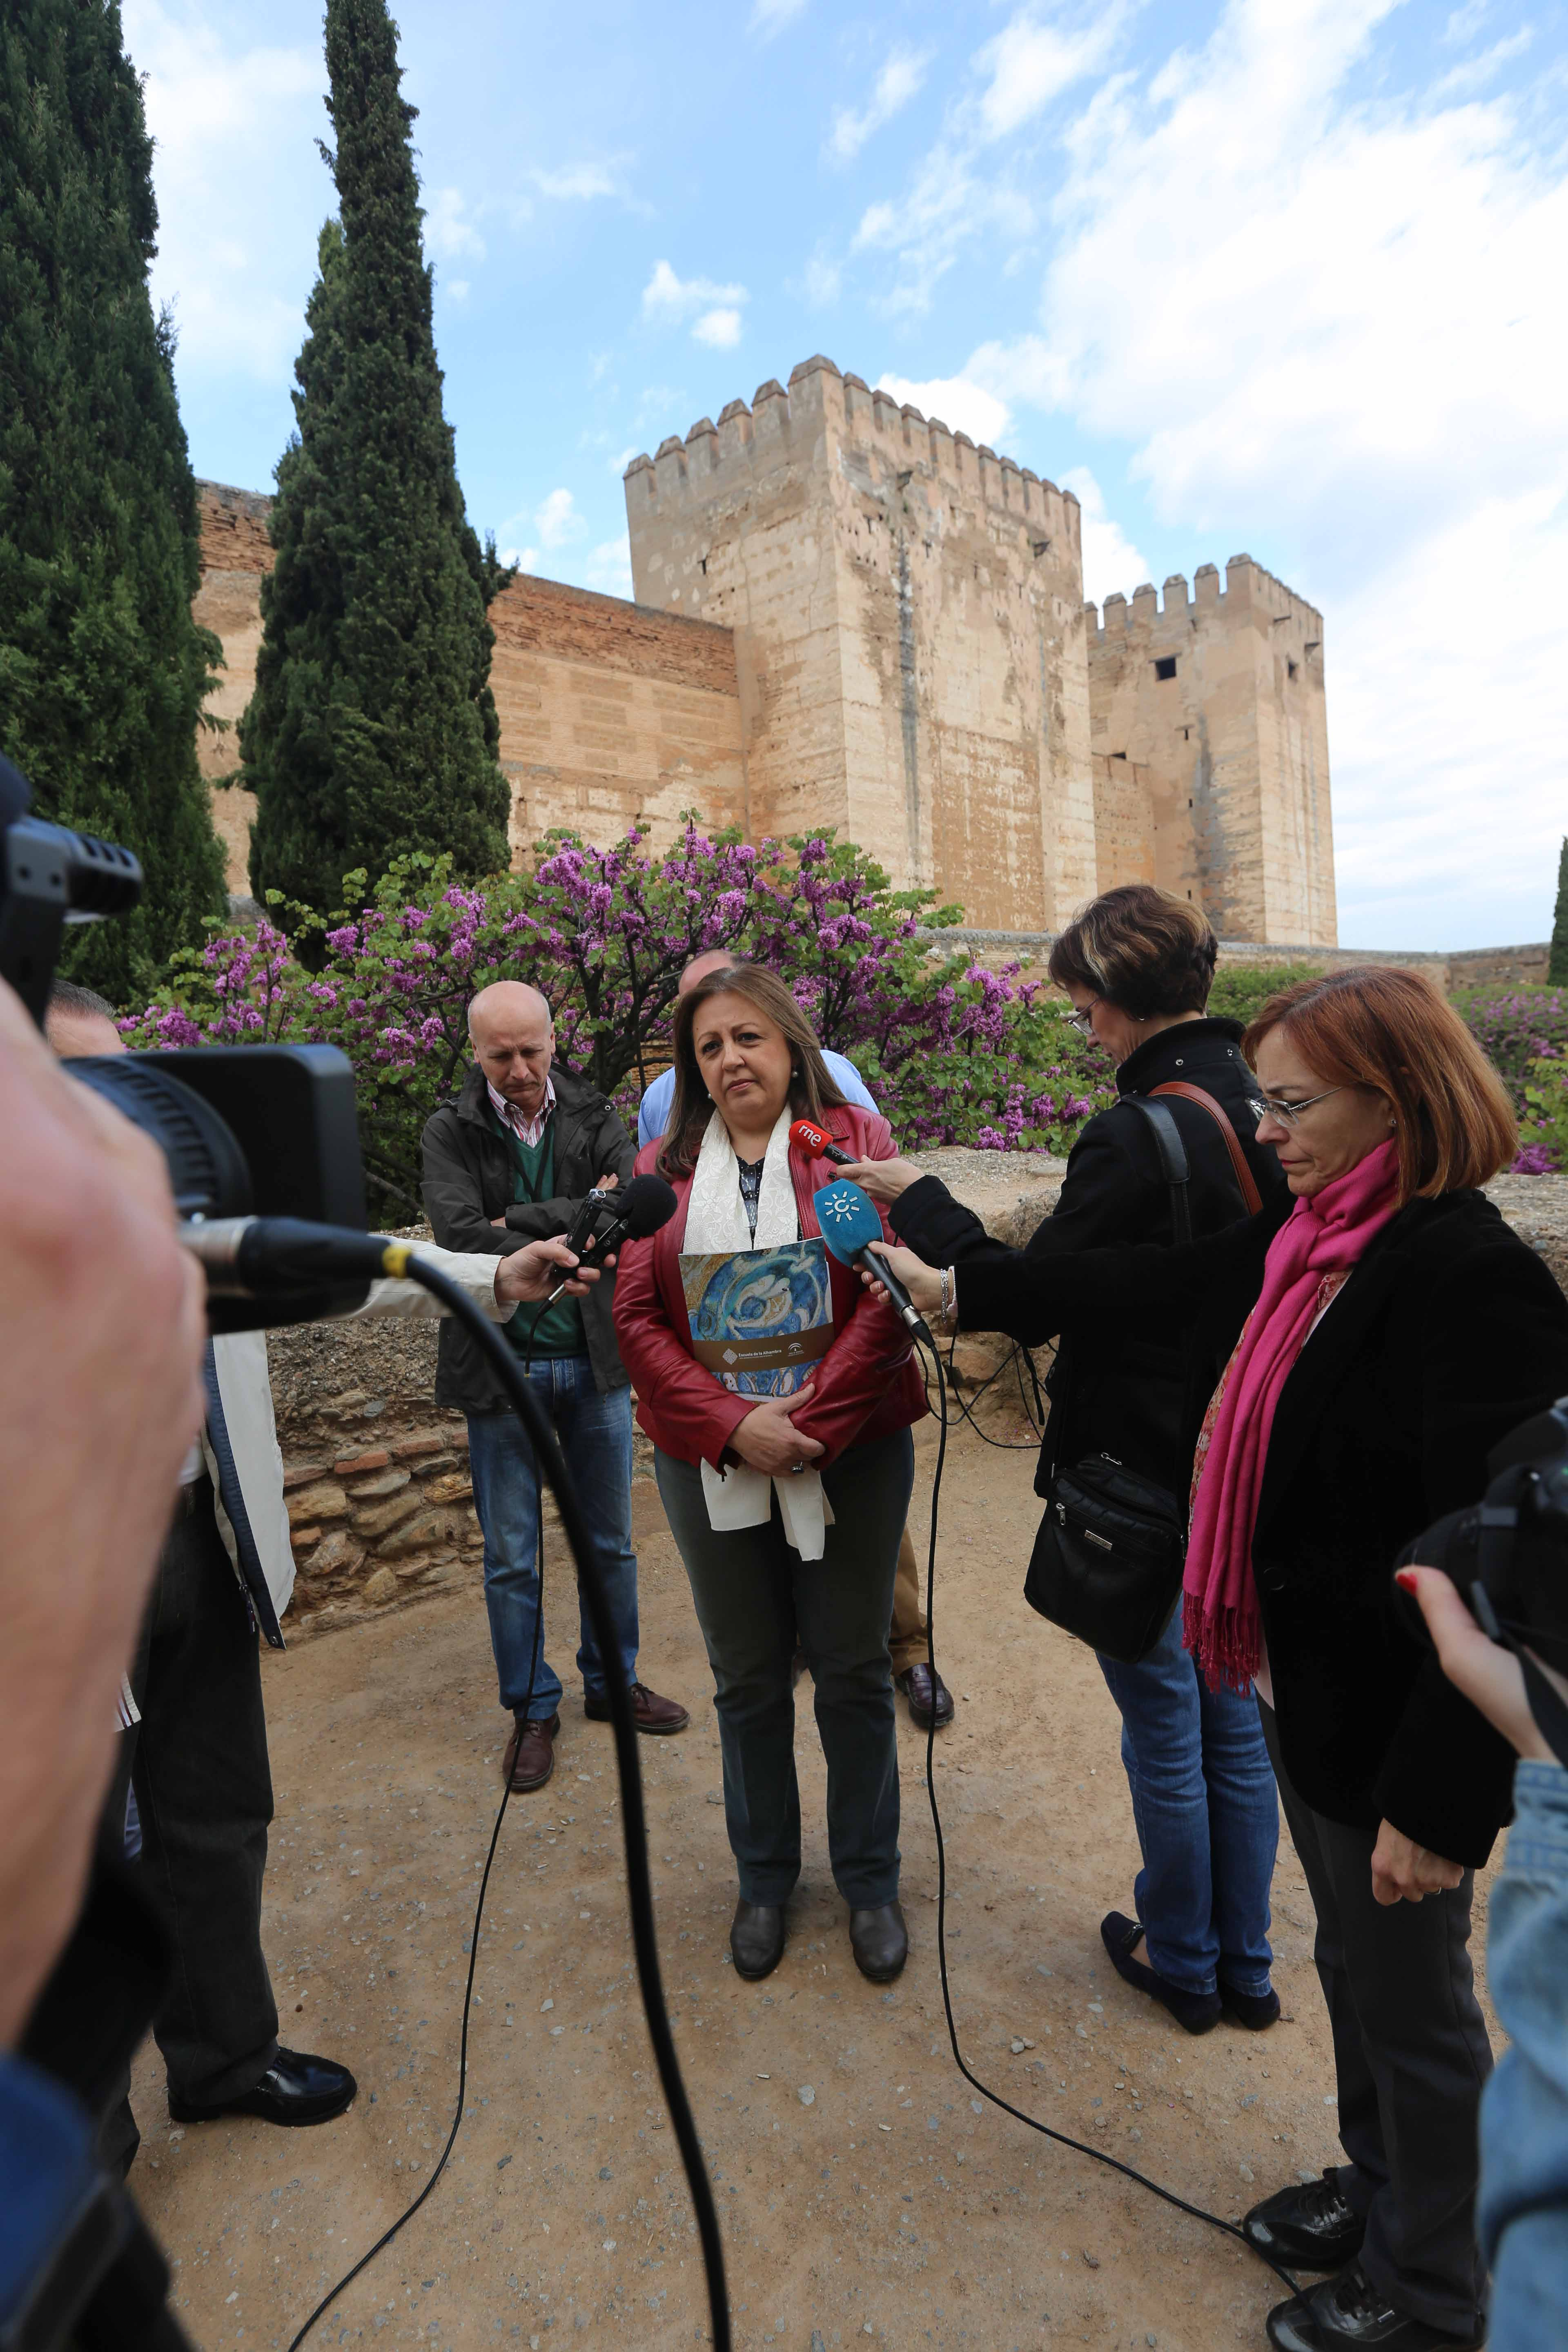 The Alhambra organizes free guided tours to some of its spaces to mark the Day of Monuments